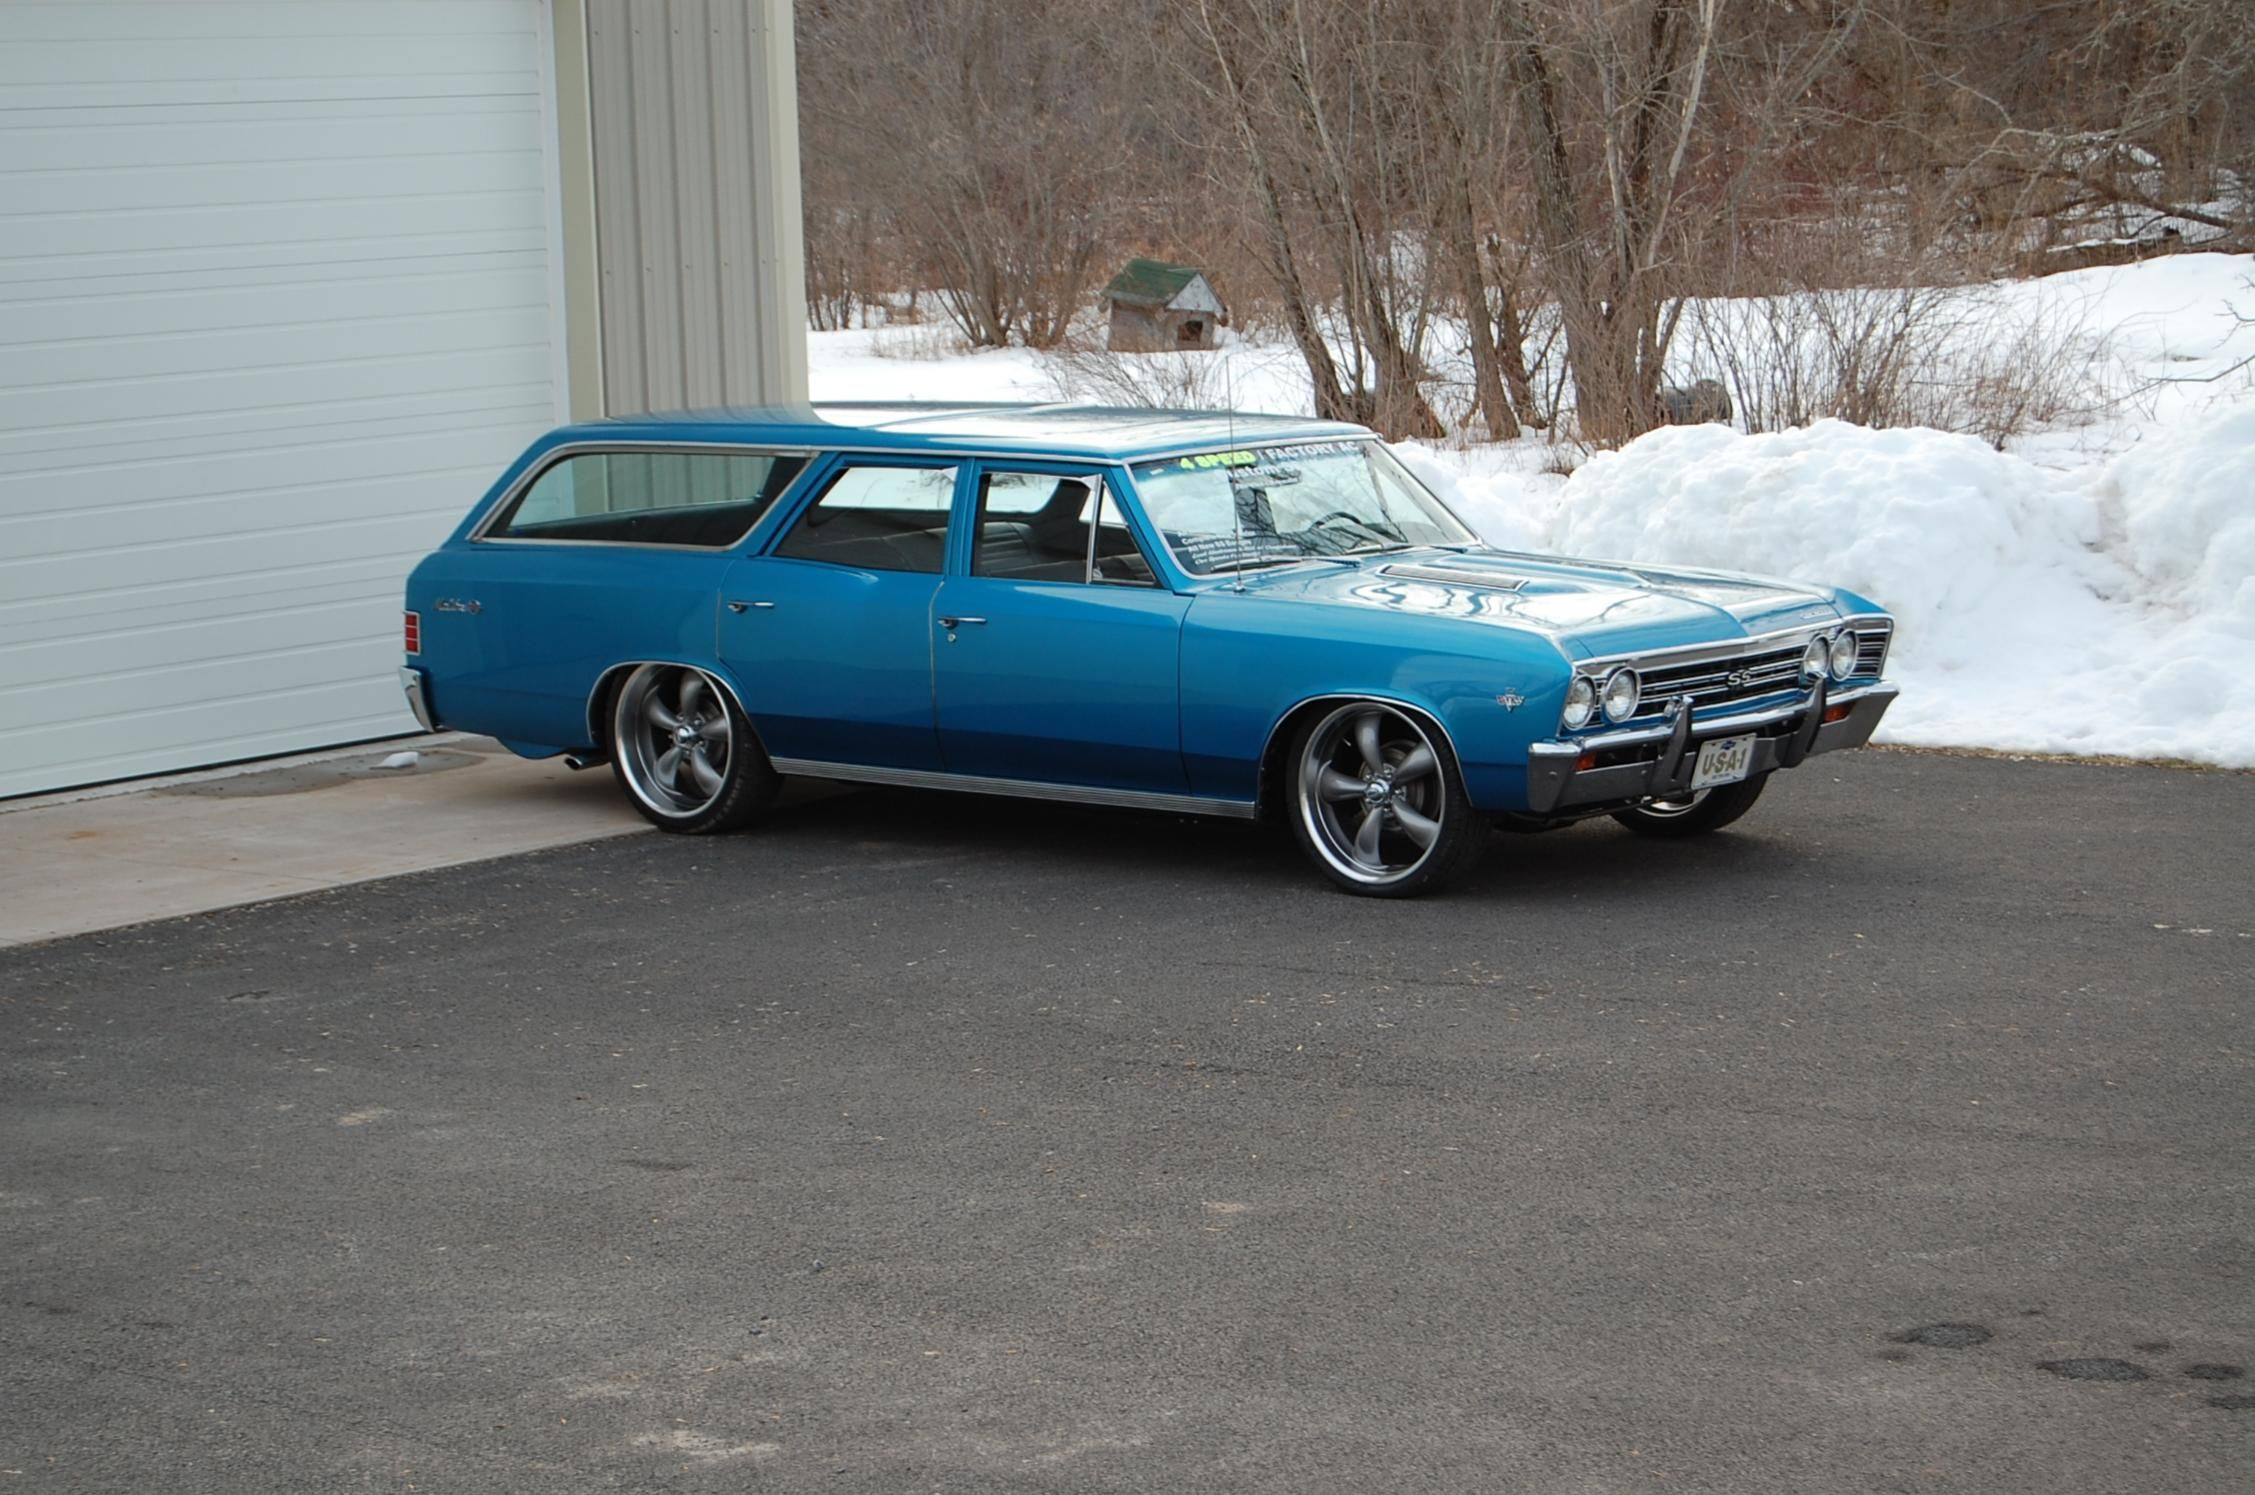 1967 Chevelle Wagon For Sale Www Ls1tech Com Wagons For Sale